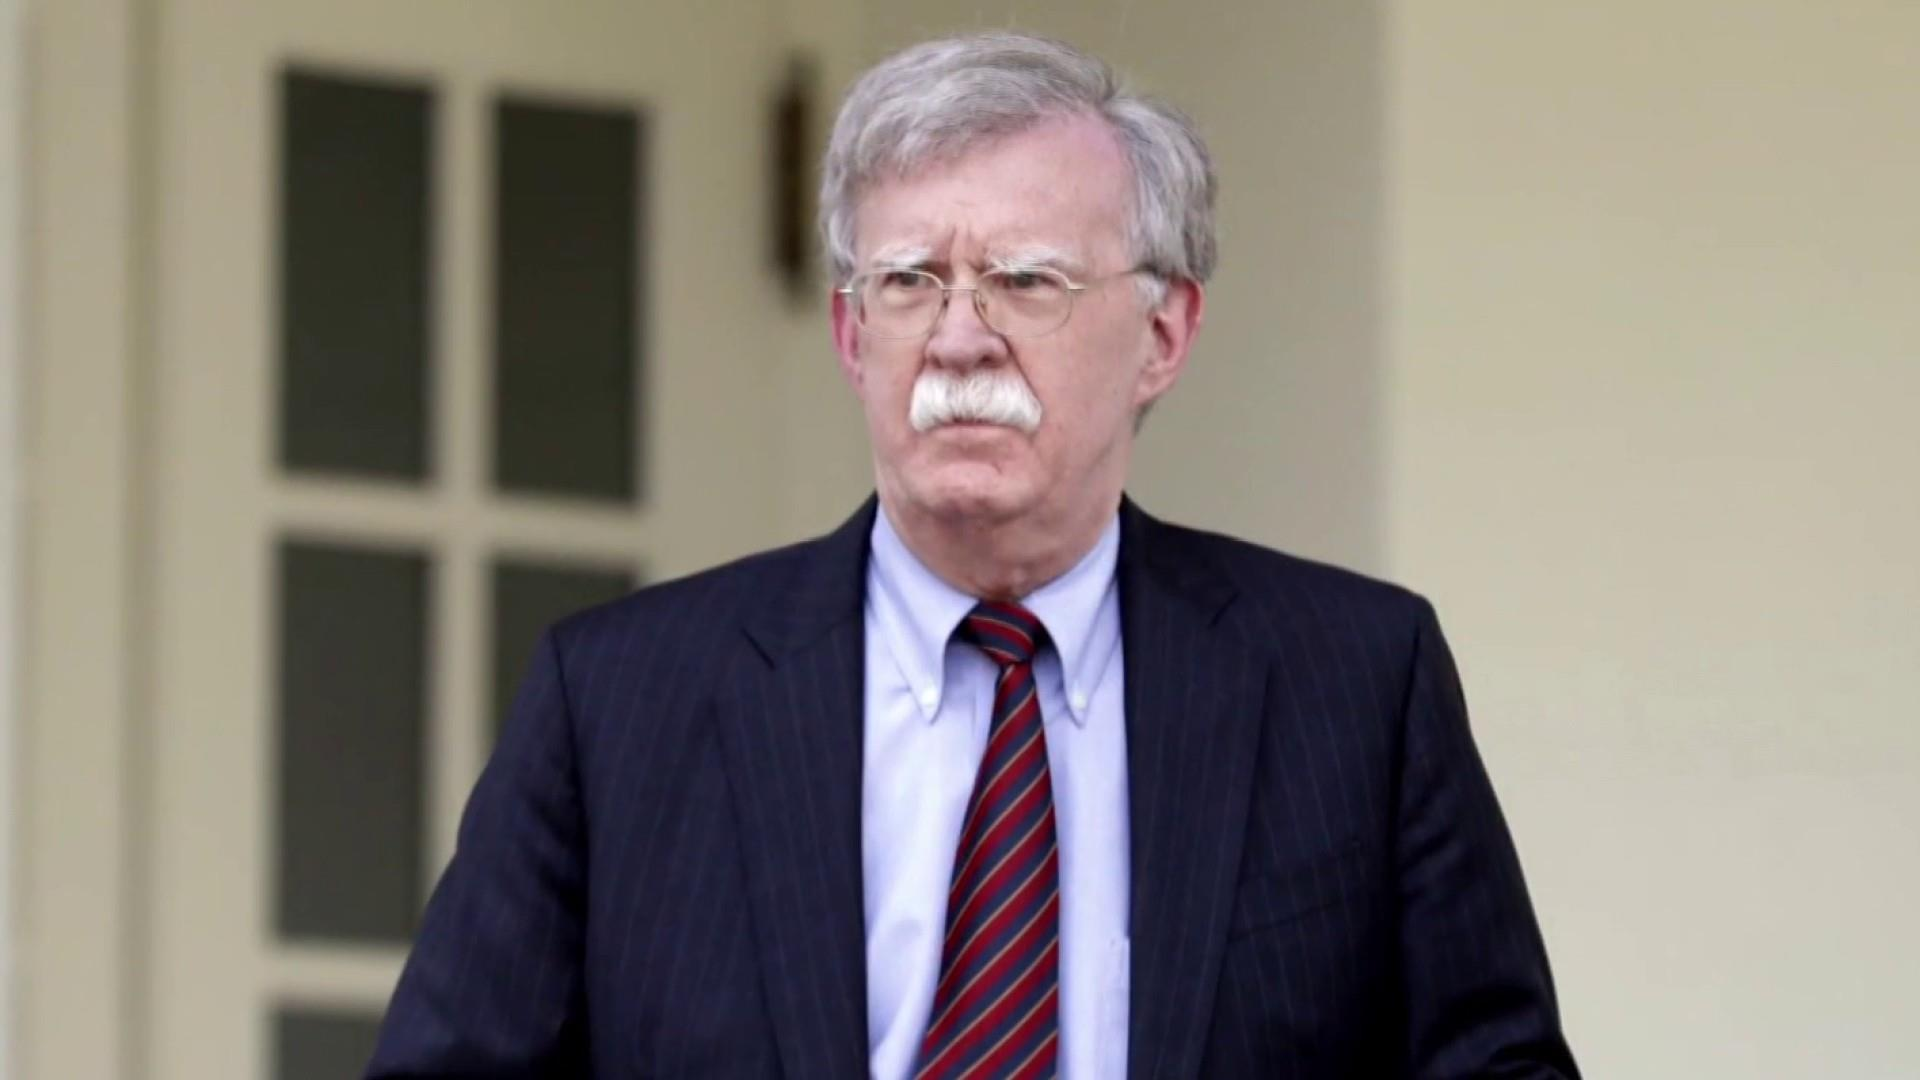 A military plan with 'John Bolton's name all over it'